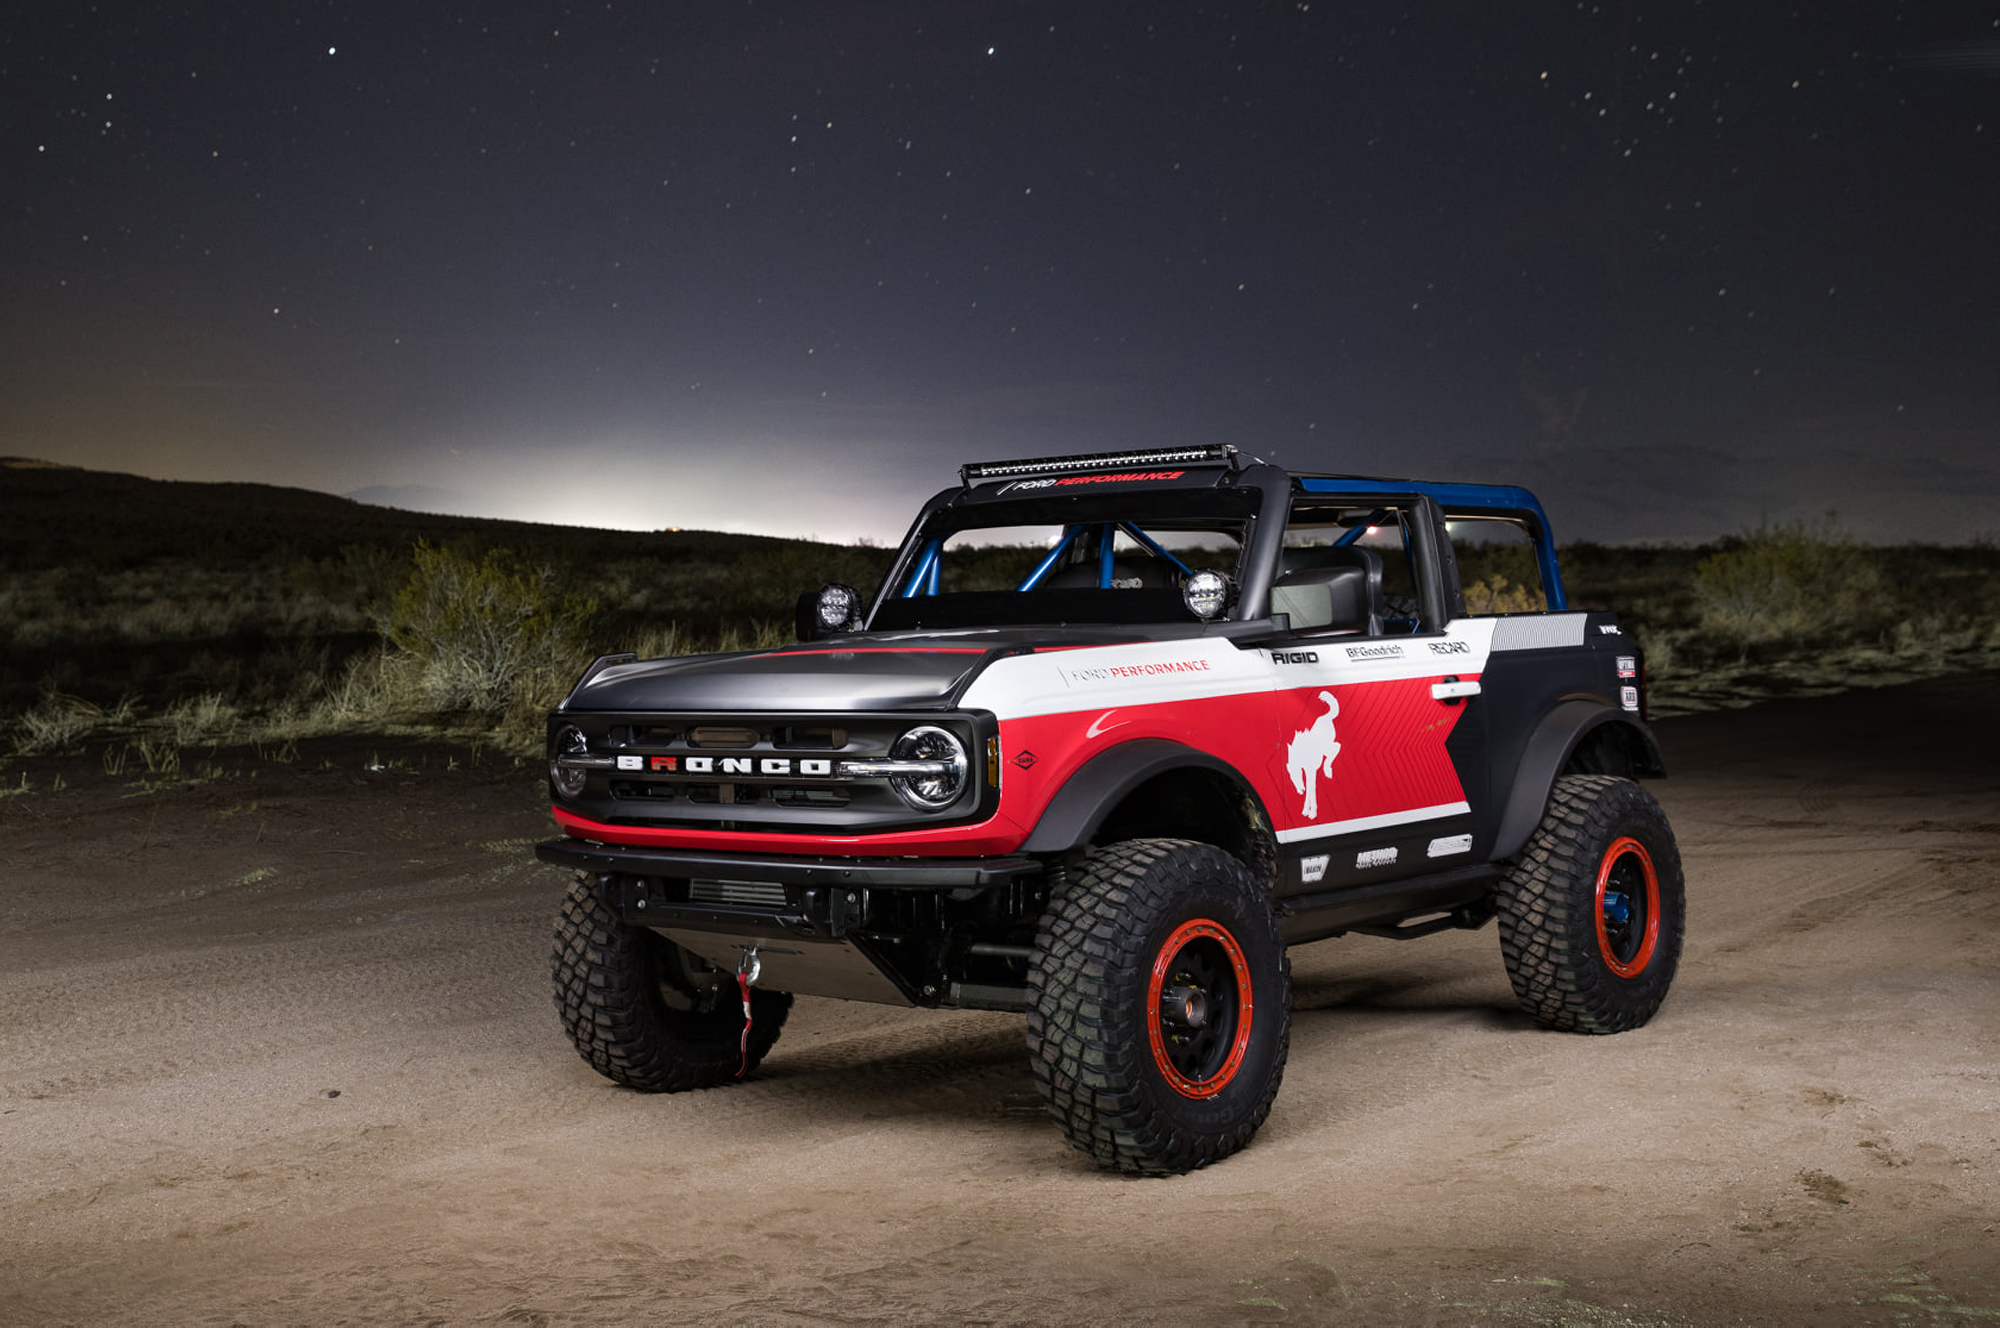 Ford Performance reveals the Bronco 4600 Race Truck set to run in Ultra4 Stock Class